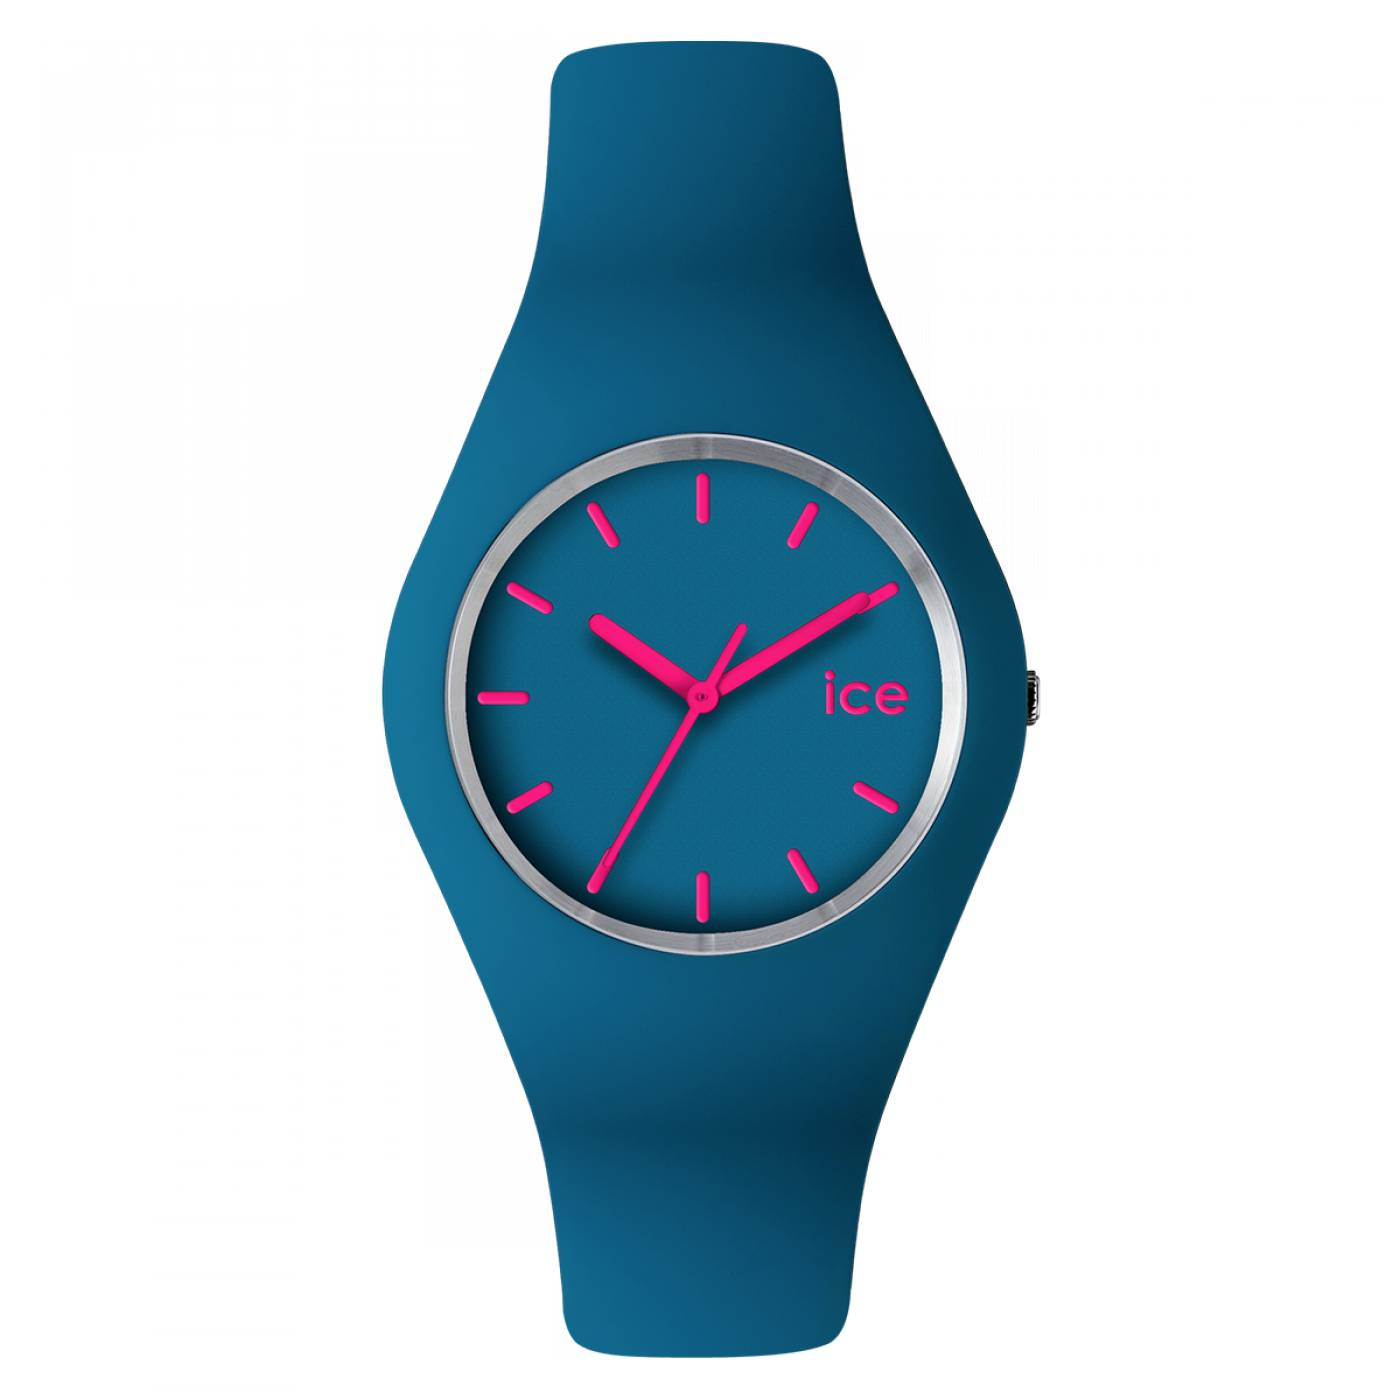 Montre homme femme ice silicone turquoise ice watch - Montre ice watch bleu turquoise ...